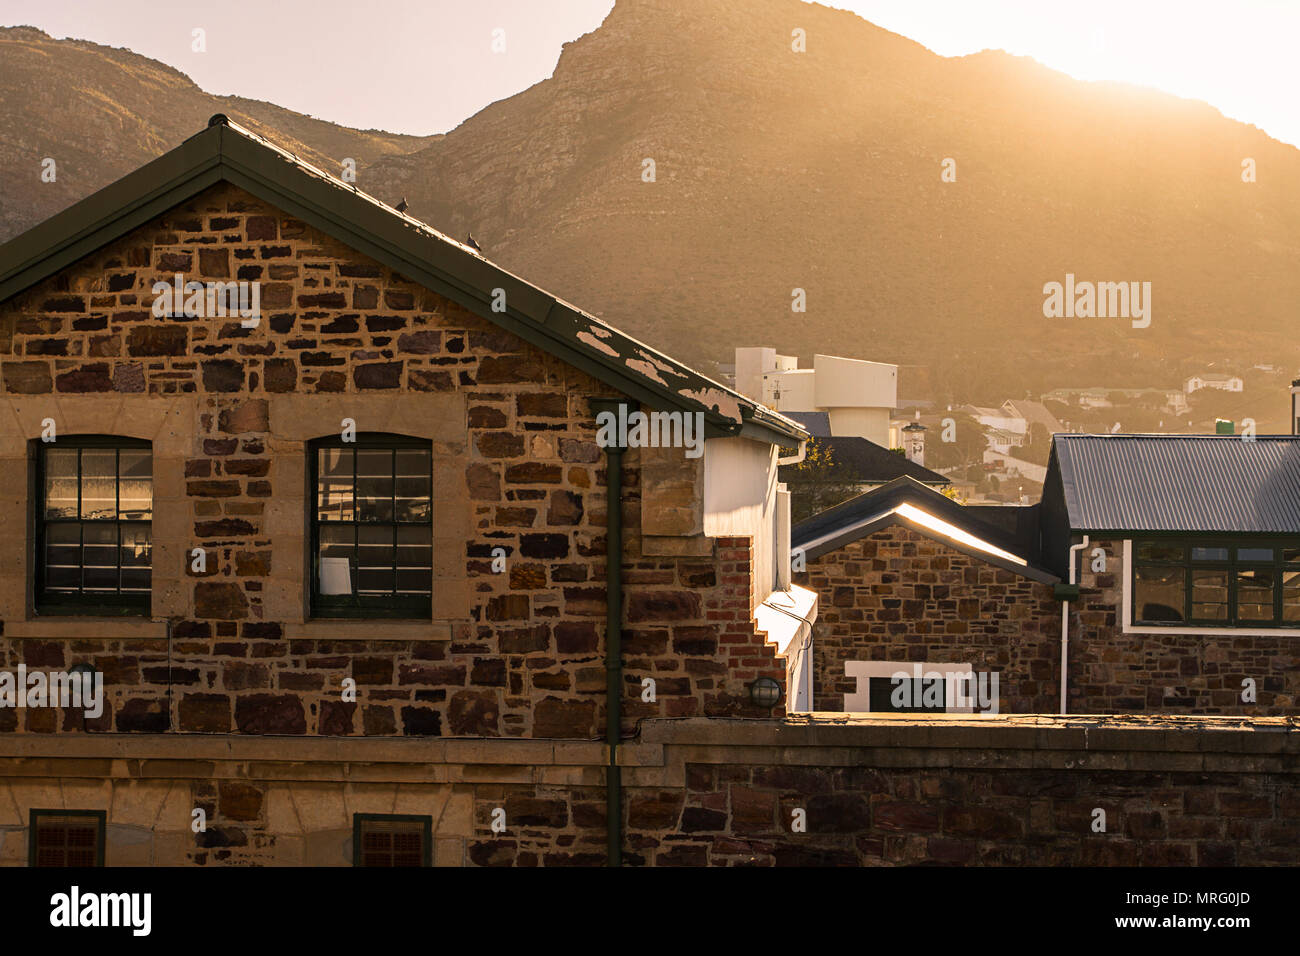 Simon's Town harbor scene in the Western Cape (Cape Town)  South Africa - Stock Image